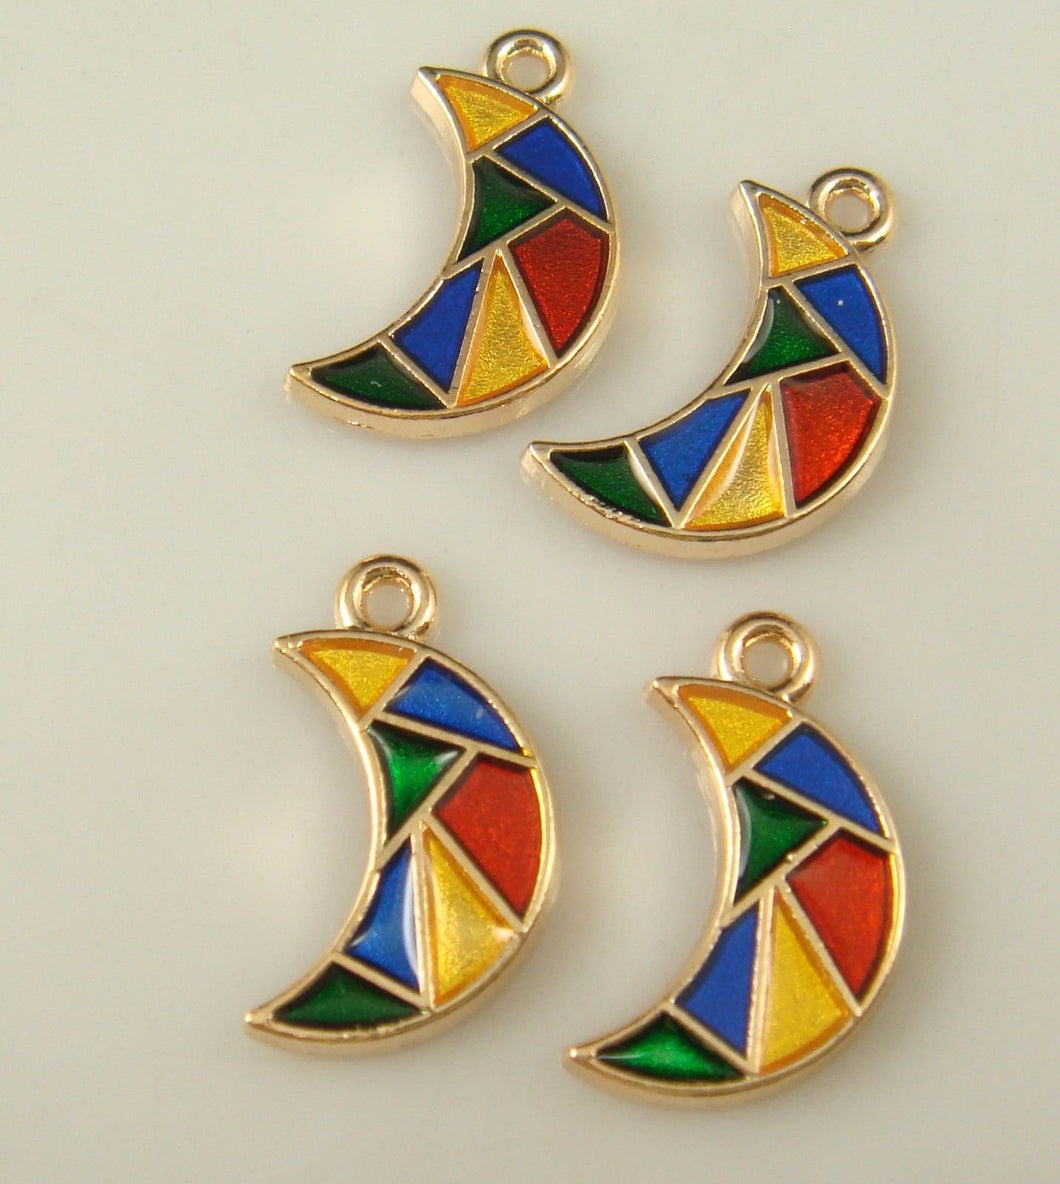 Moon Charms Gold Moon Charms Moon Pendants Crescent Moon Charm Enamel Charms Half Moon Charms 2pcs